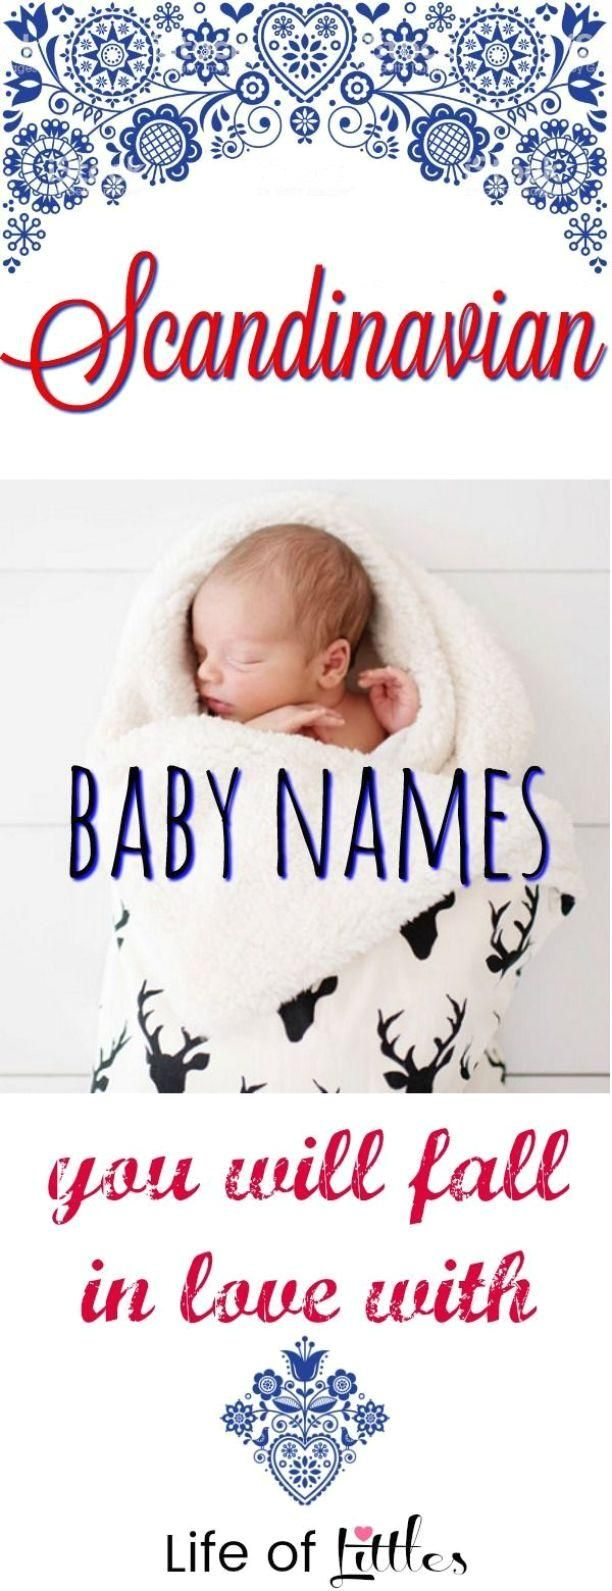 Scandinavian Baby Names Check Out This List Featuring Baby Boy Girl Names Straight From Denmark In 2020 Scandinavian Baby Names Scandinavian Baby Baby Names 2018